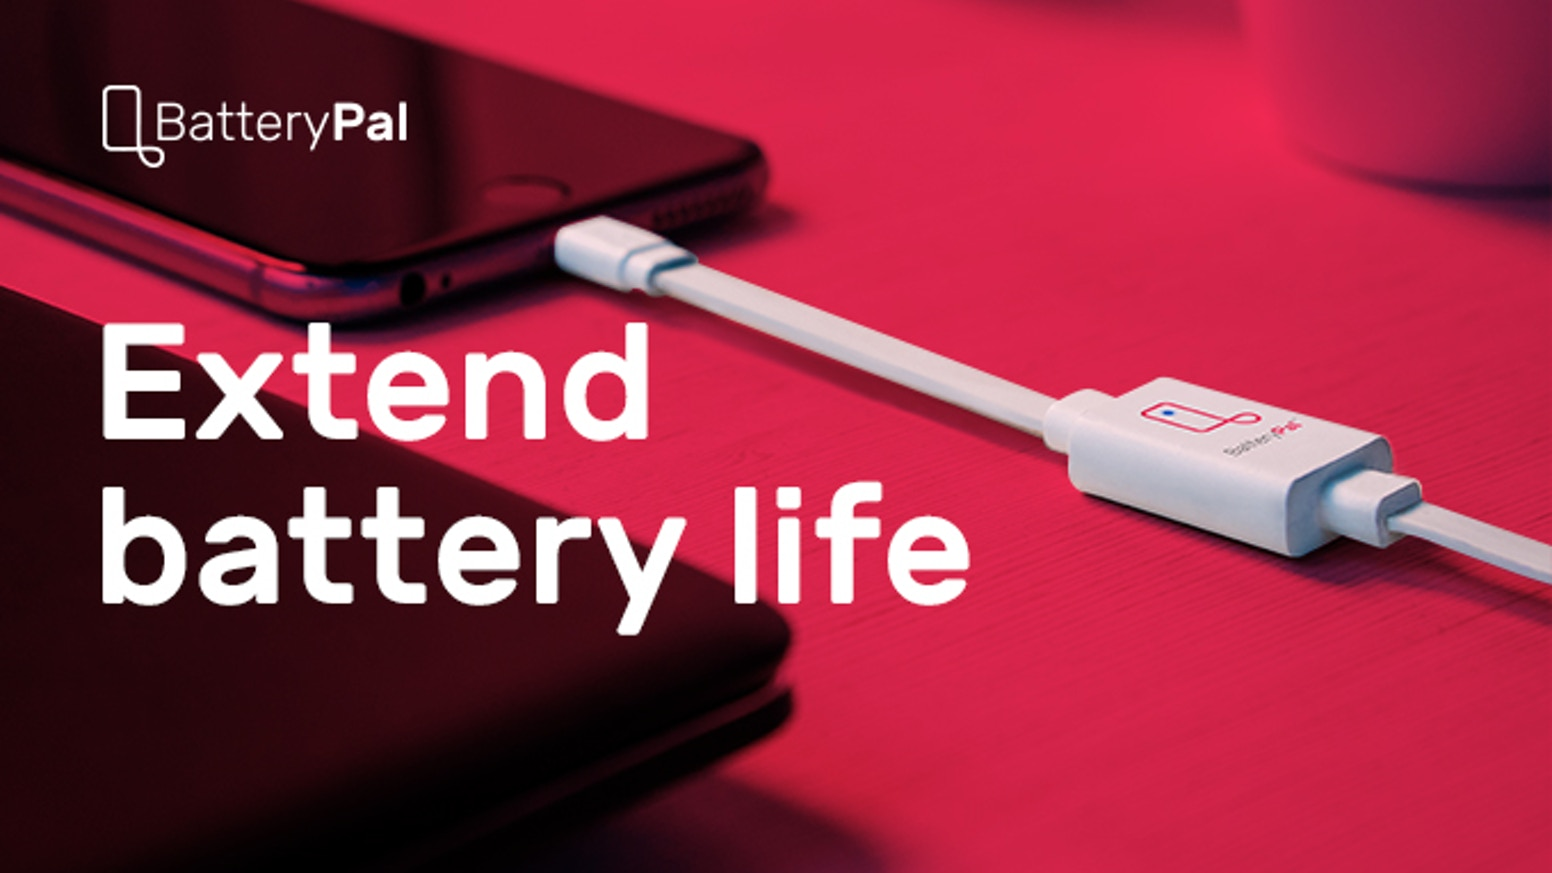 An innovative smart charging cable - the simplest way to save your phone's battery!